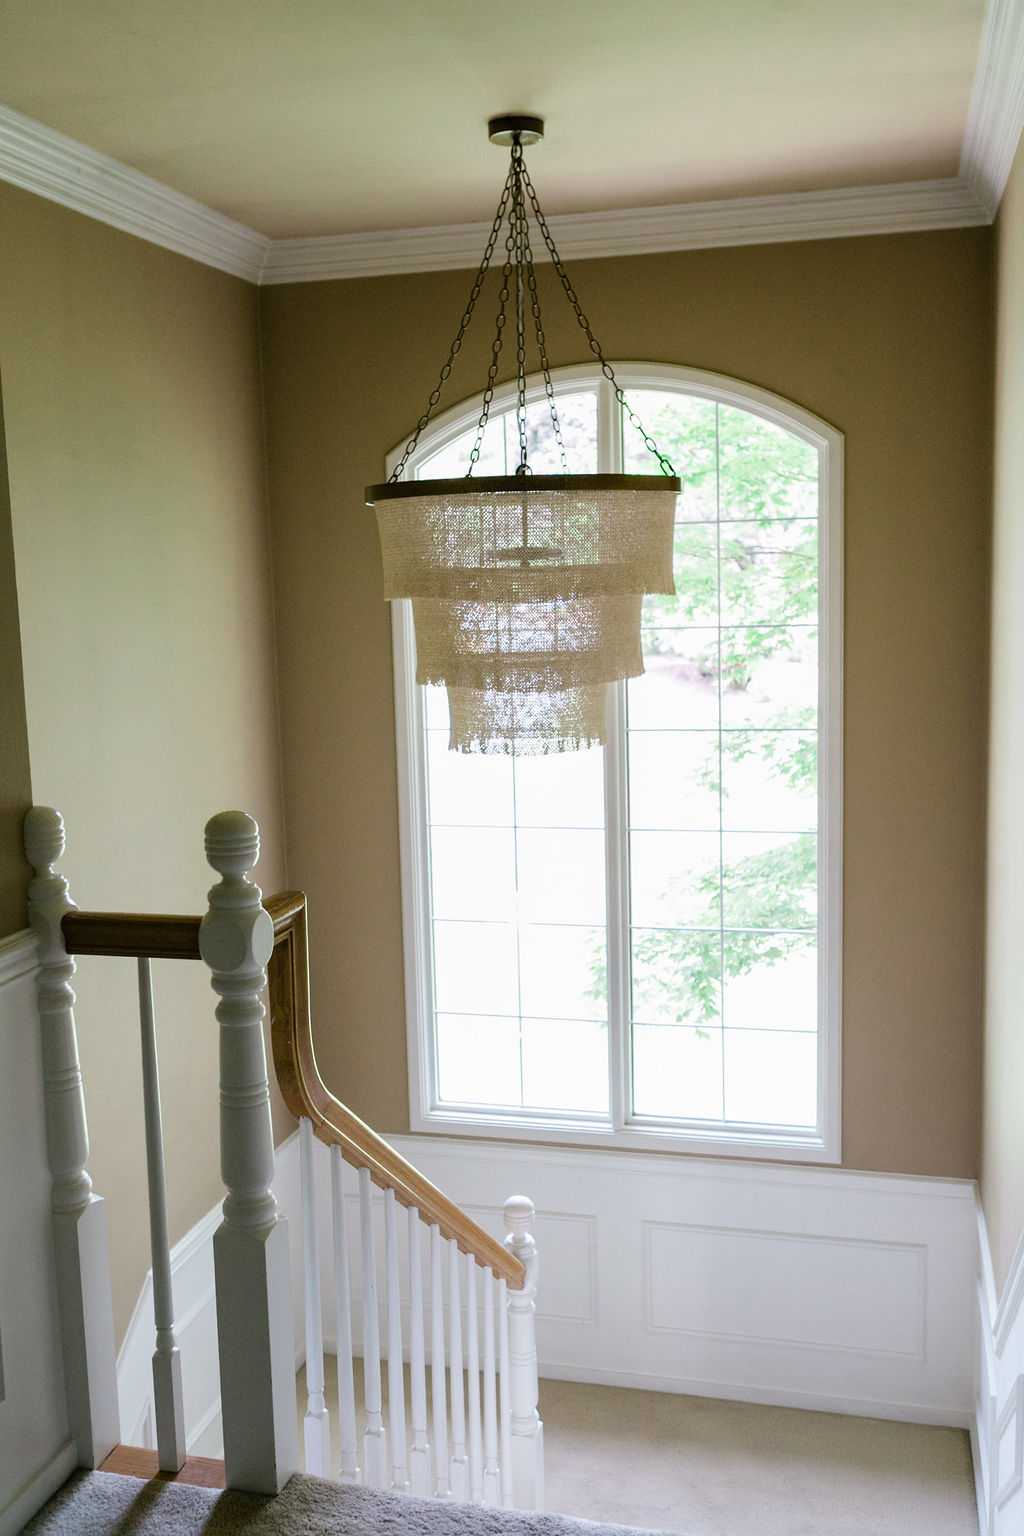 Stairwell Chandelier, with wood banister and white millwork.